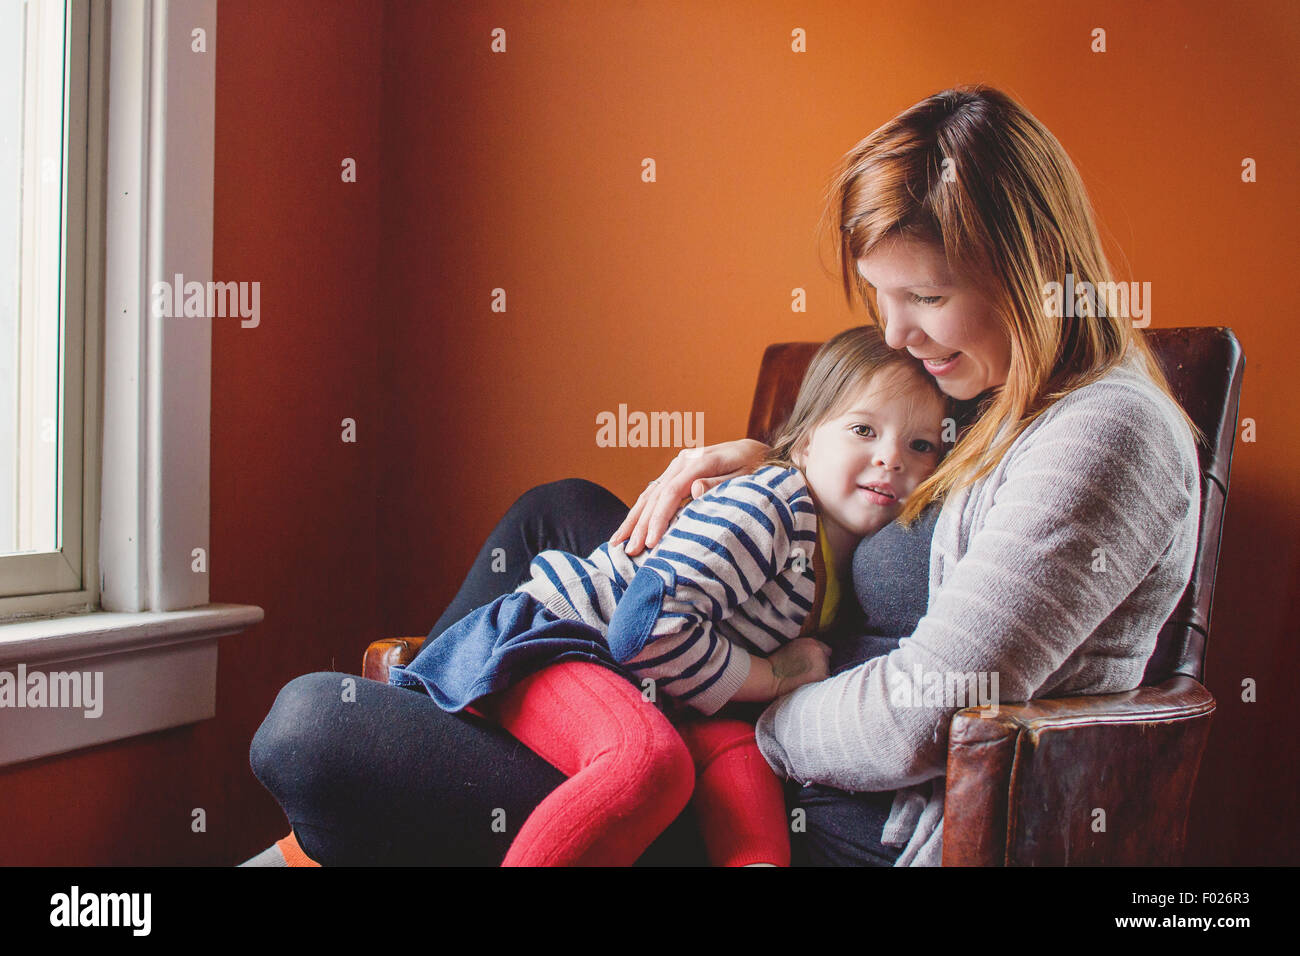 Mother and daughter sitting in a chair together - Stock Image